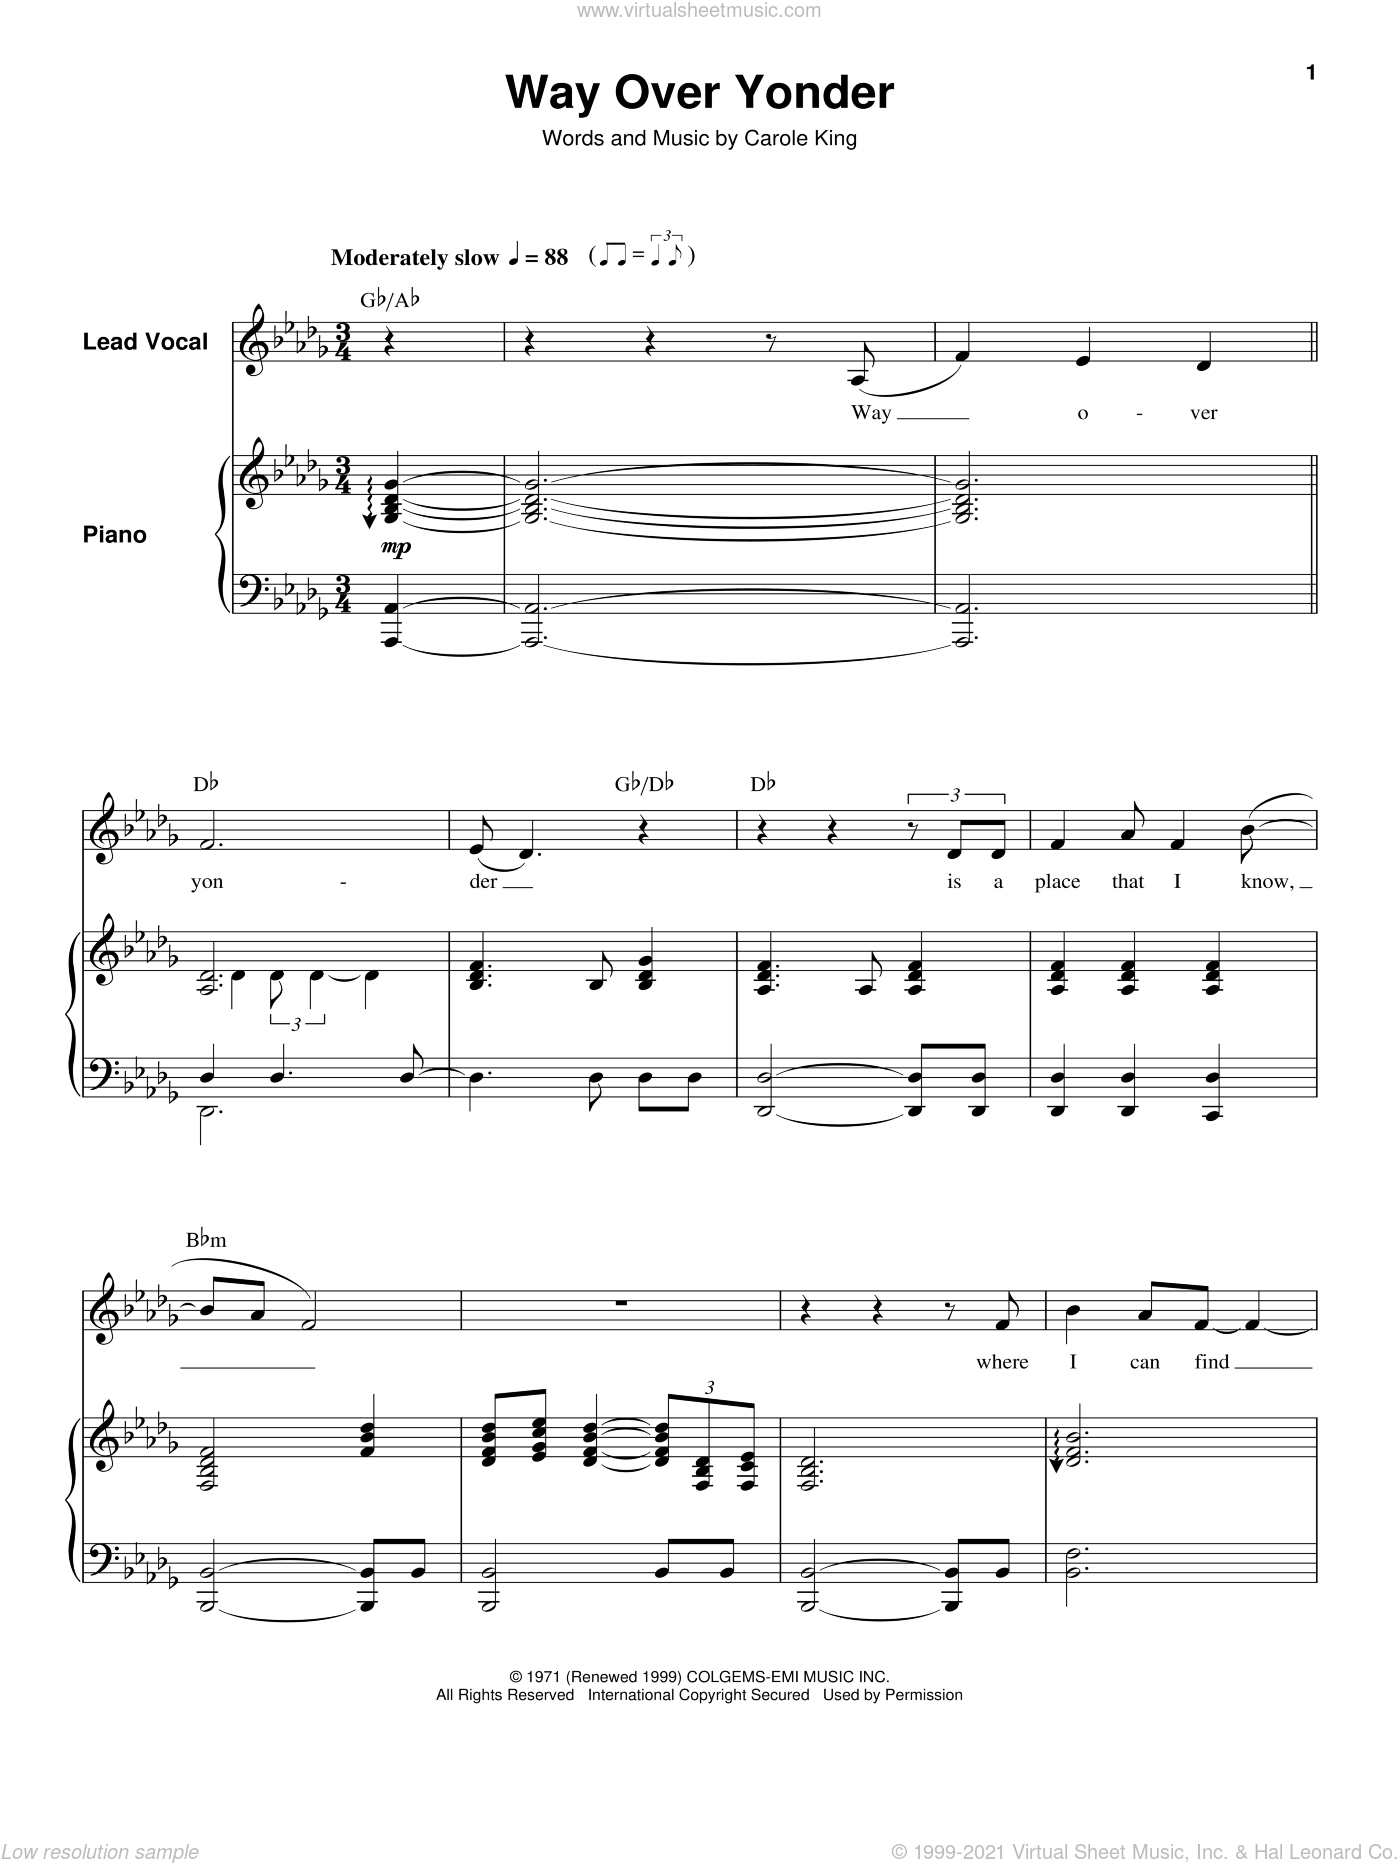 Way Over Yonder sheet music for keyboard or piano by Carole King, intermediate. Score Image Preview.